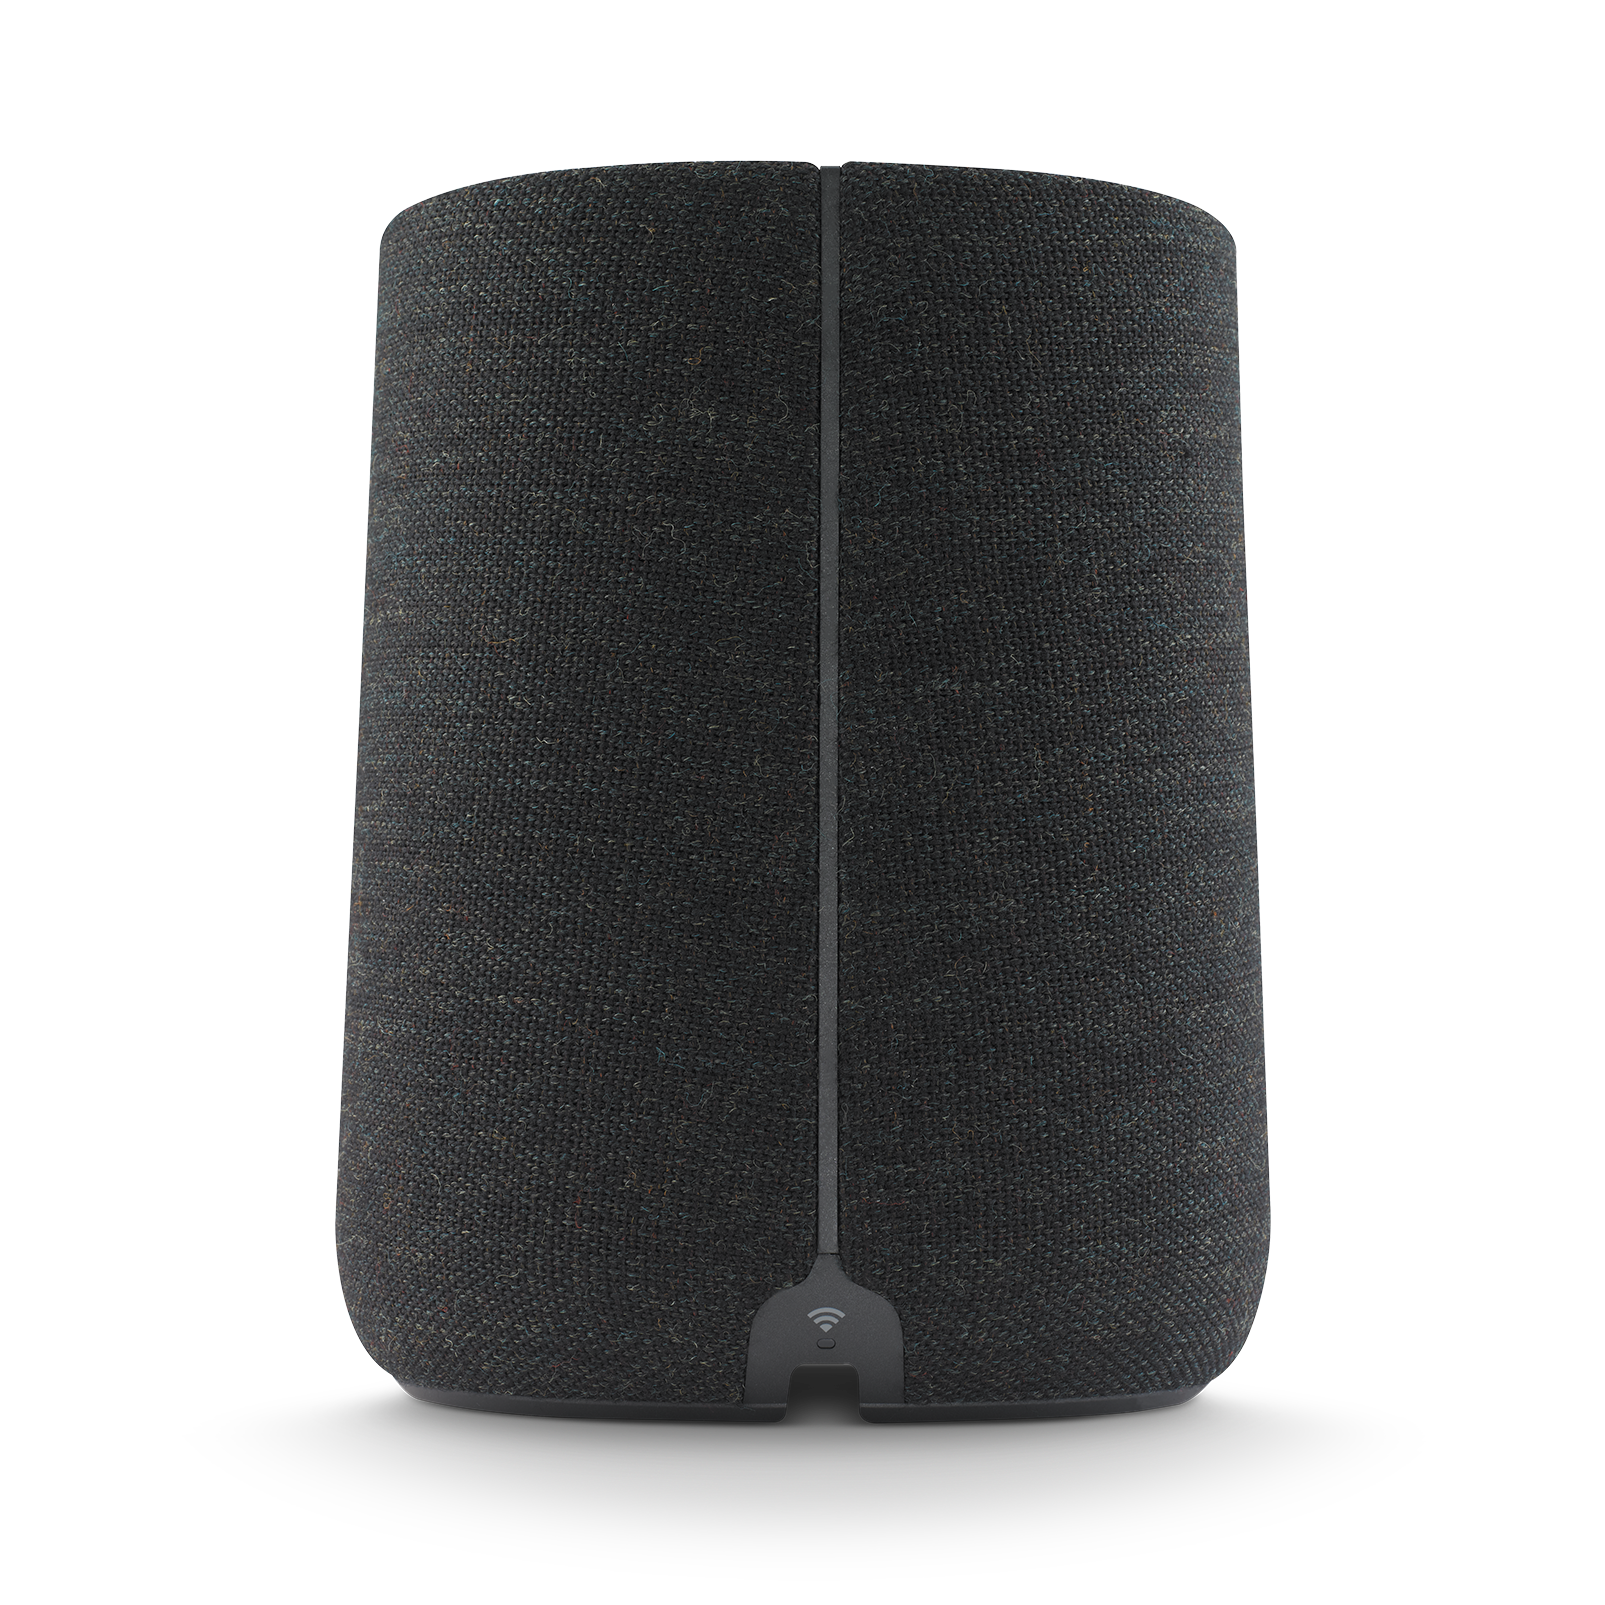 Harman Kardon Citation ONE DUO - Black - Compact, smart and amazing sound - Back